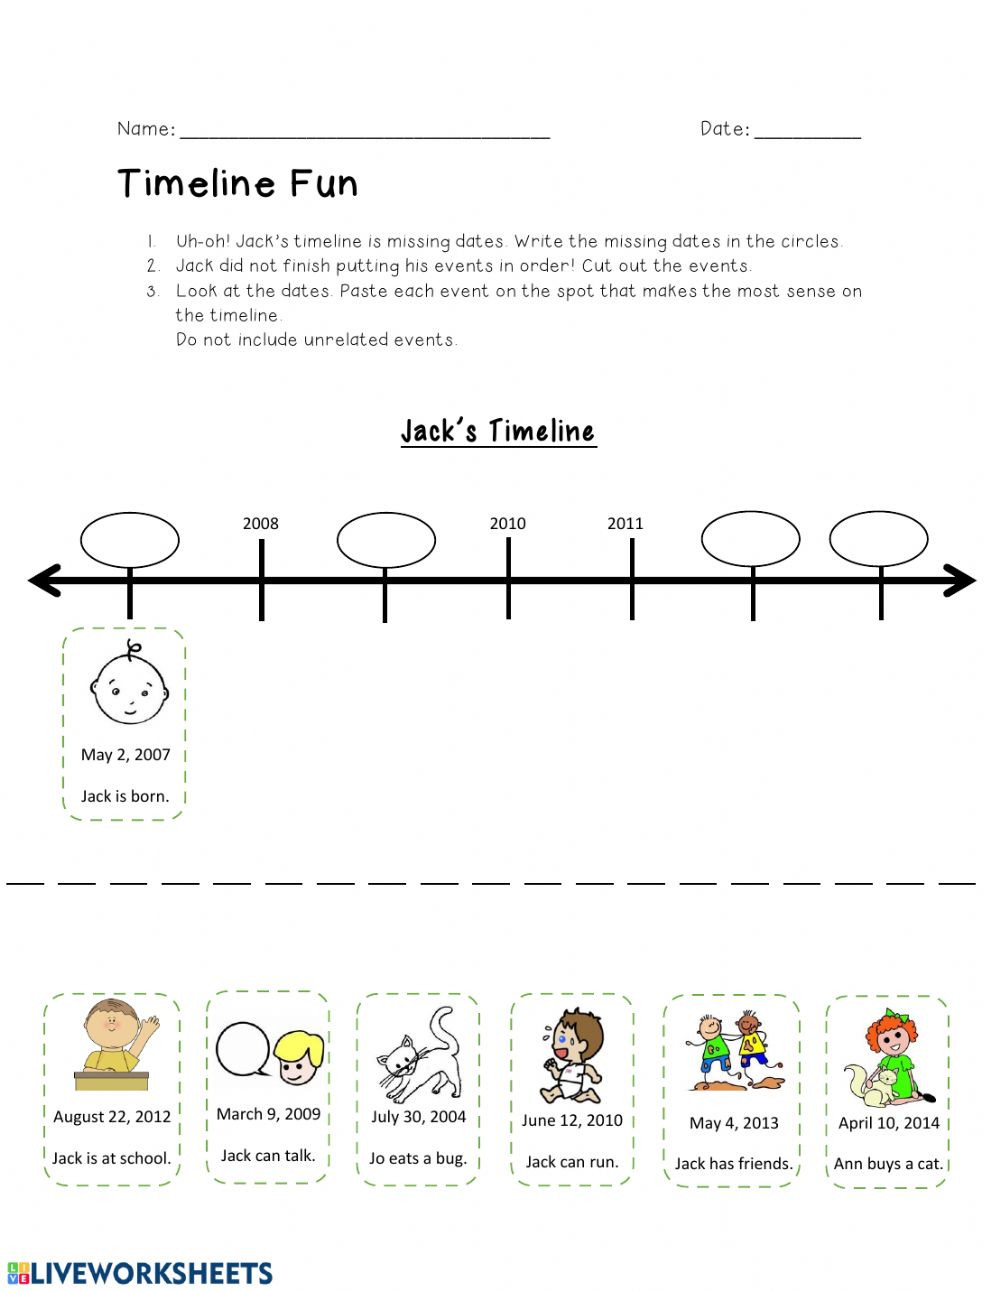 Timeline Worksheets for Middle School Timeline Online Worksheet and Pdf